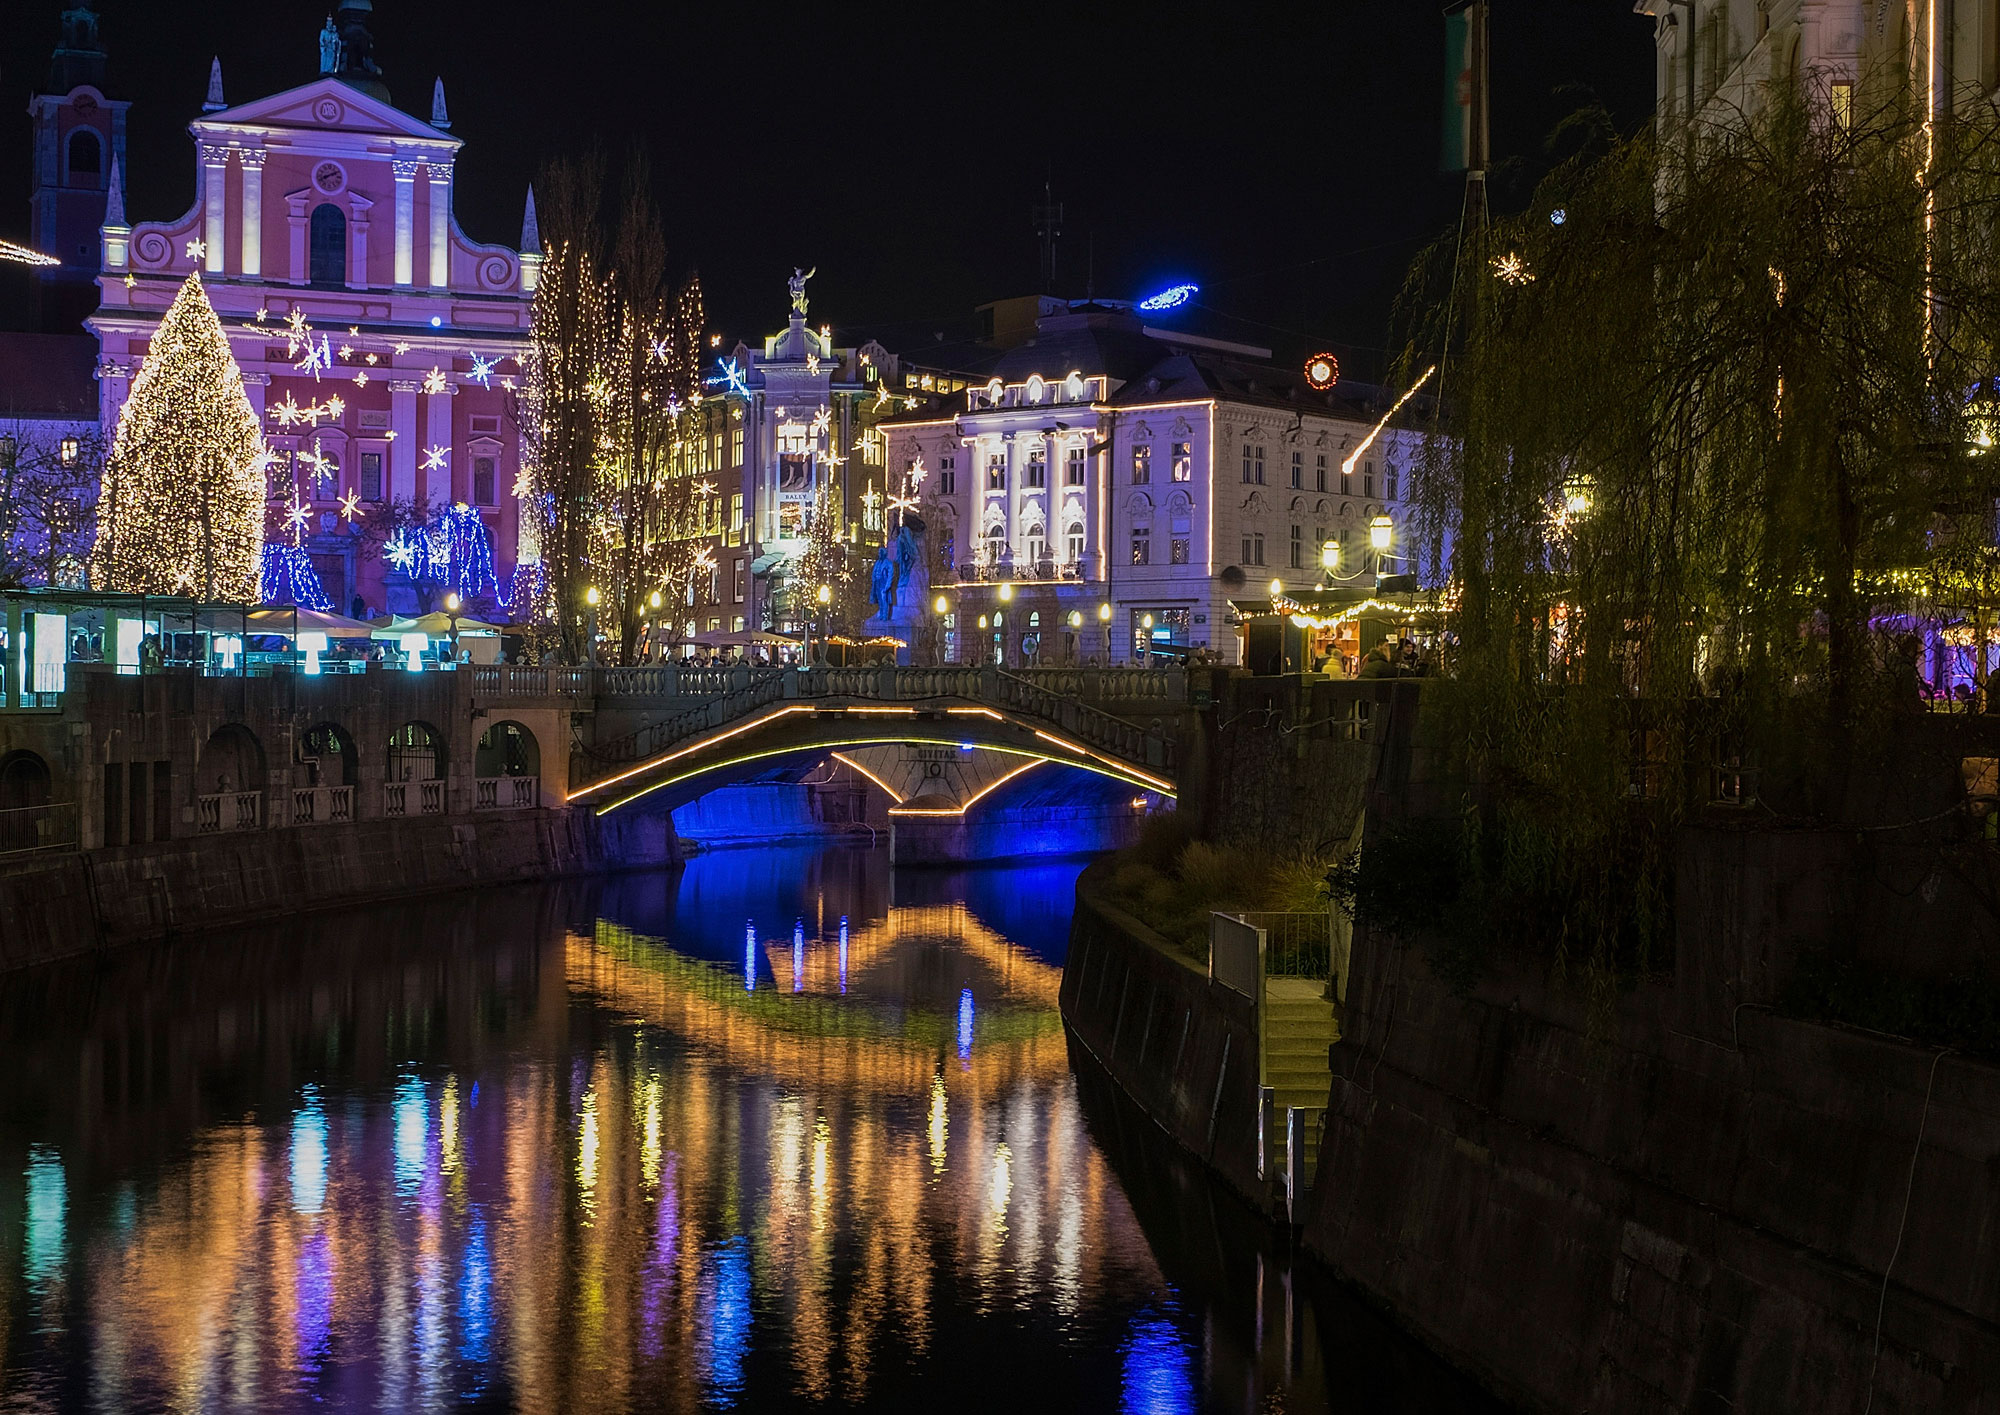 Christmas lights on buildings in the old town reflect on the river Ljubljanica in Ljubljana, Slovenia, on Dec. 2, 2015. GETTY IMAGES/Marco Secchi.